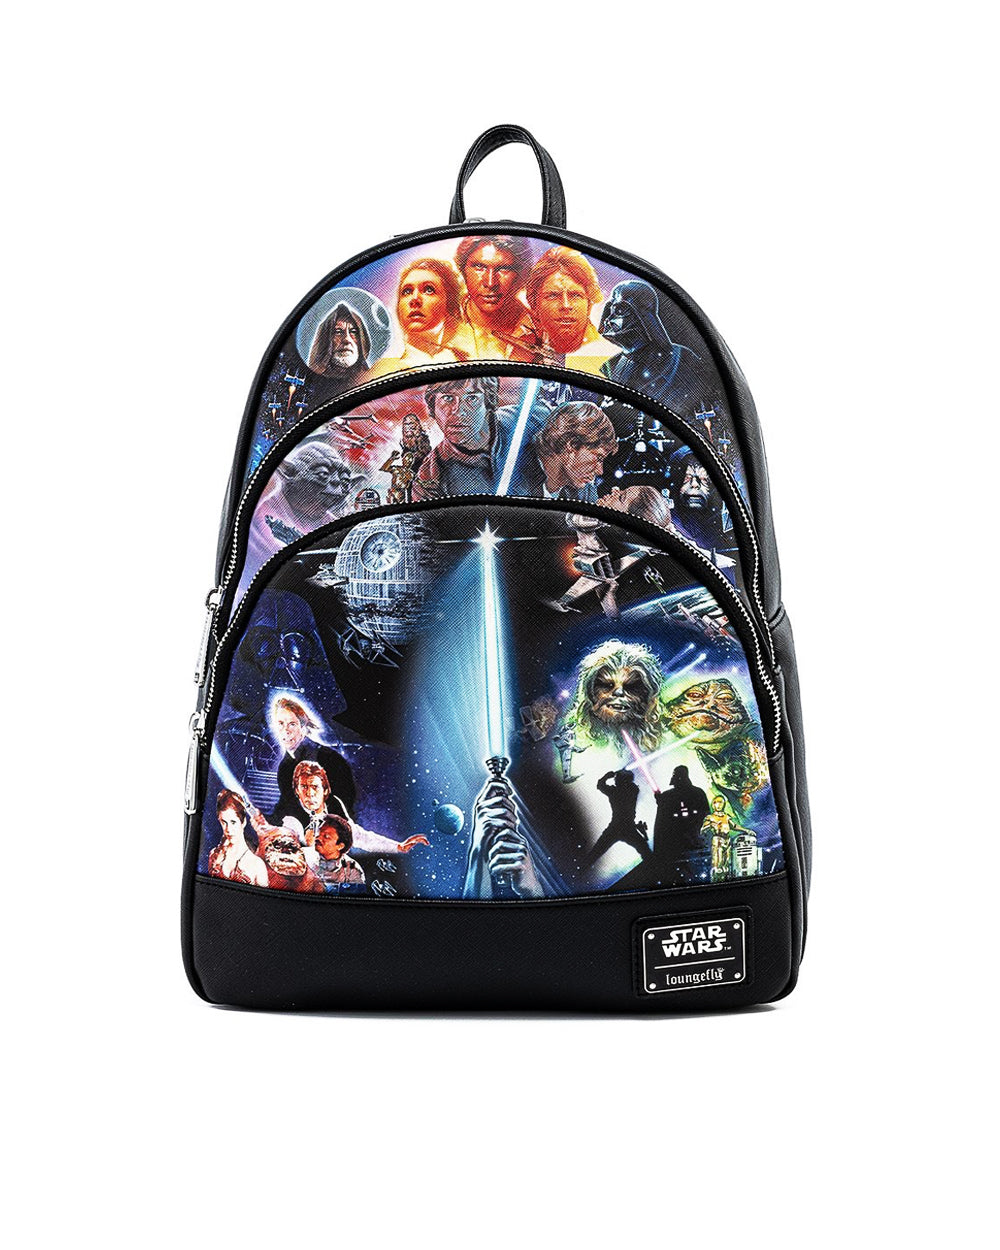 Star Wars Original Trilogy Mini Backpack *PREORDER* *August/September Delivery* - The Pink a la Mode - Loungefly - The Pink a la Mode